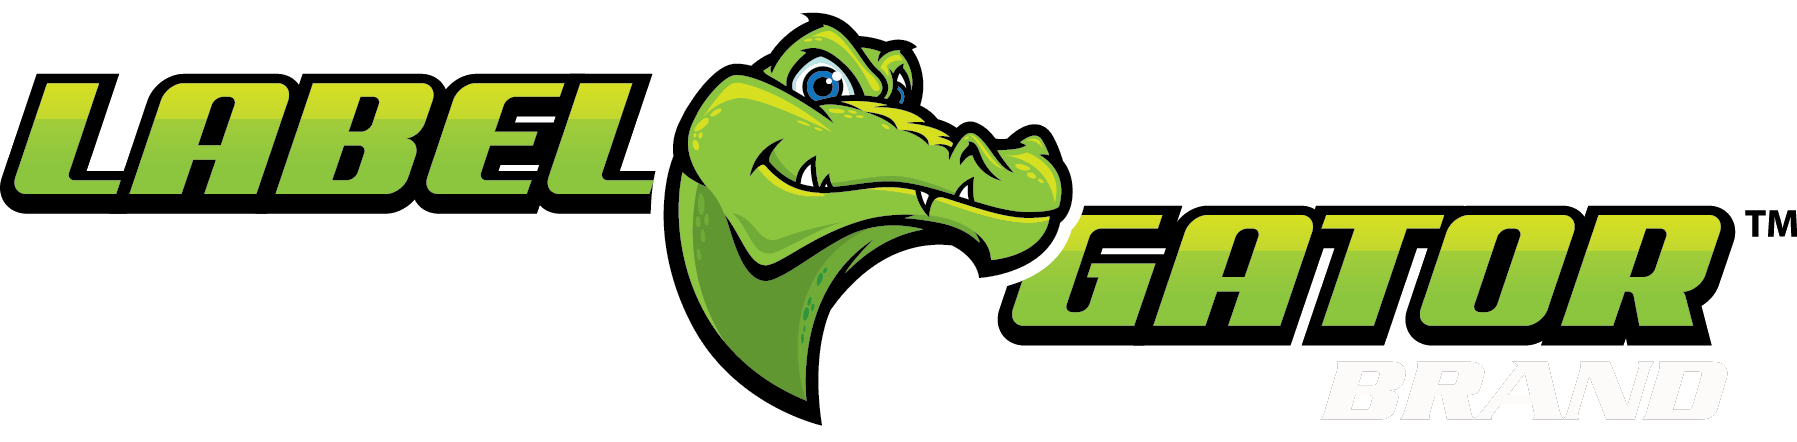 Gator clipart simple. Blog the label brand